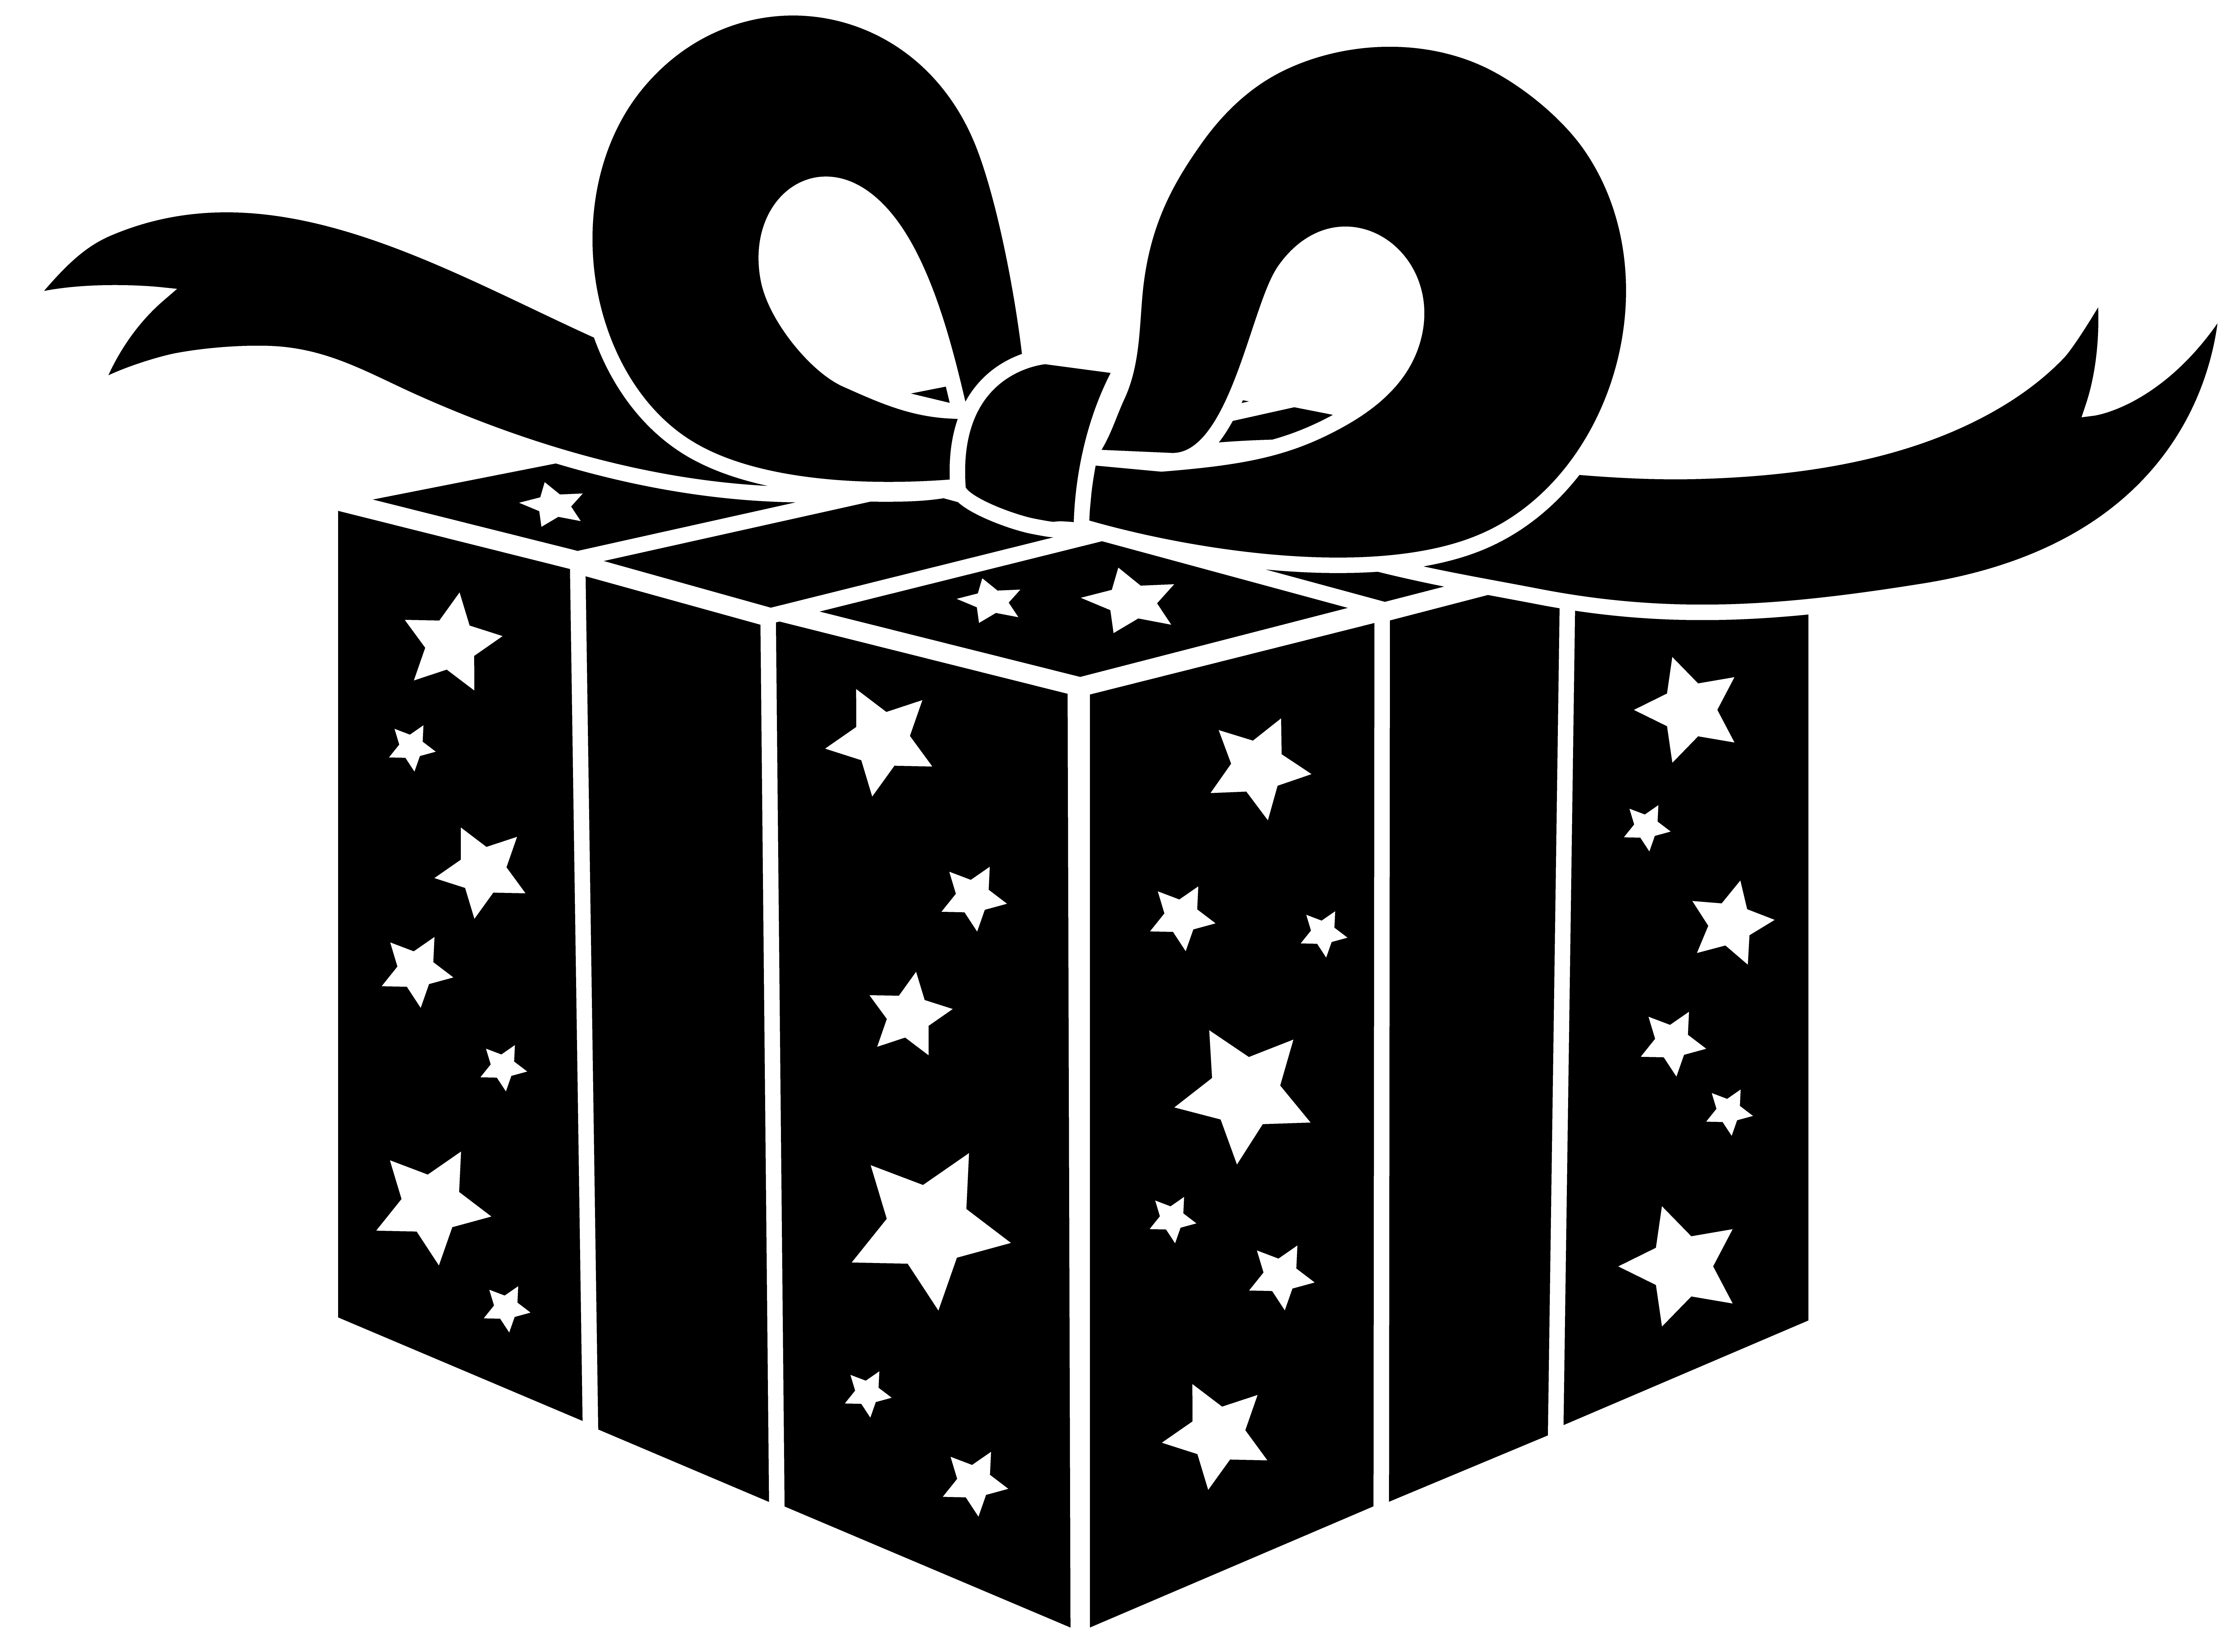 Gift silhouette png. Presents file black and